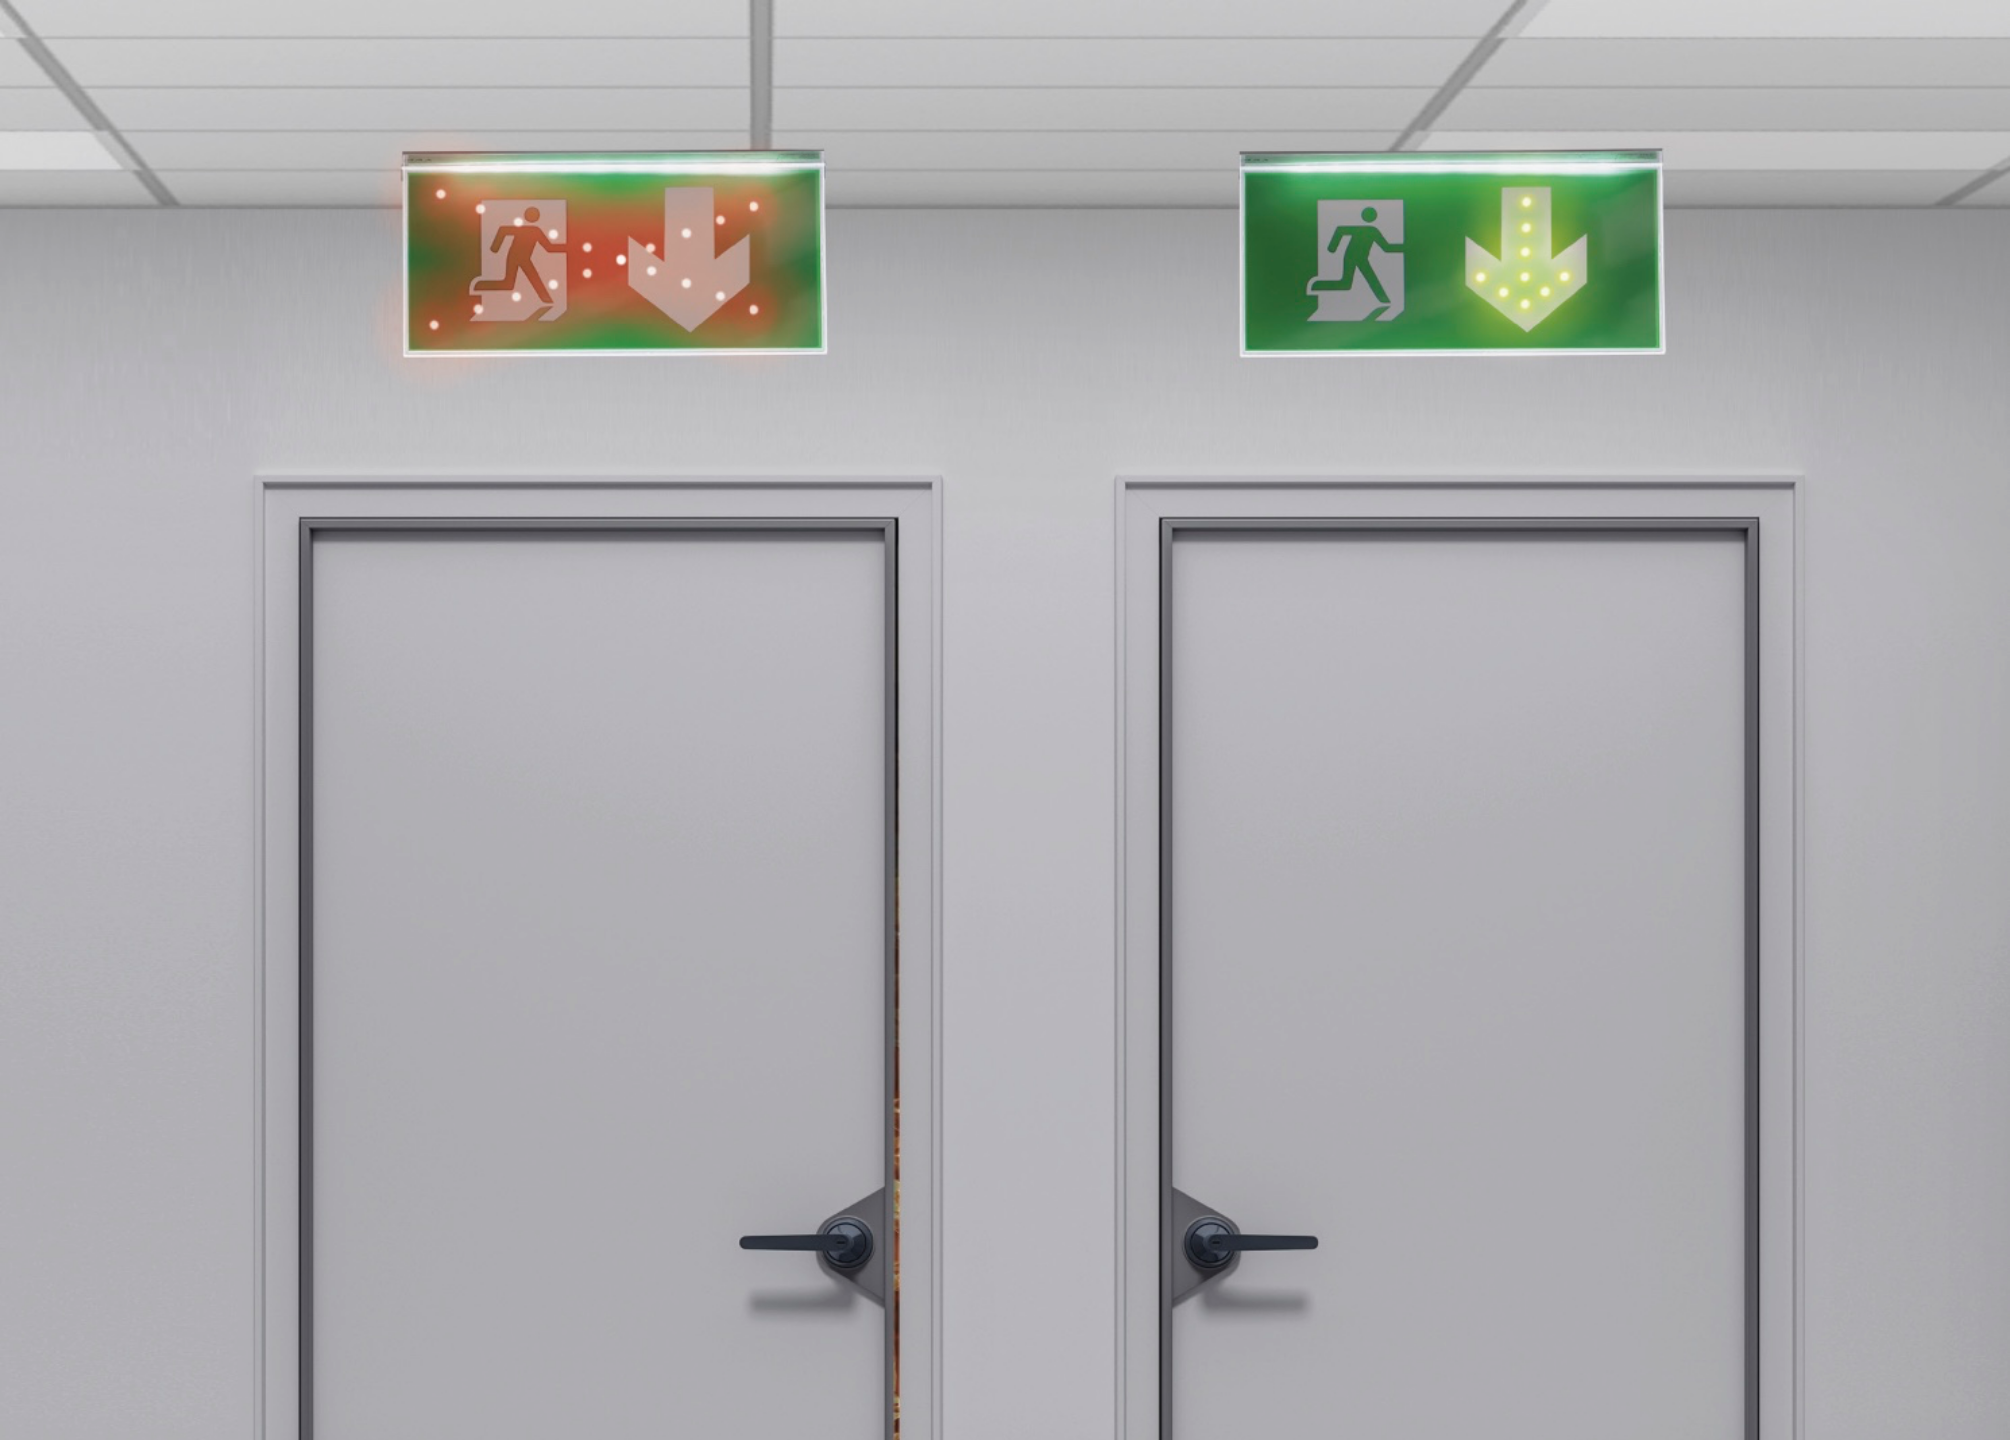 Dynamic and Adaptive Emergency Exit Sign